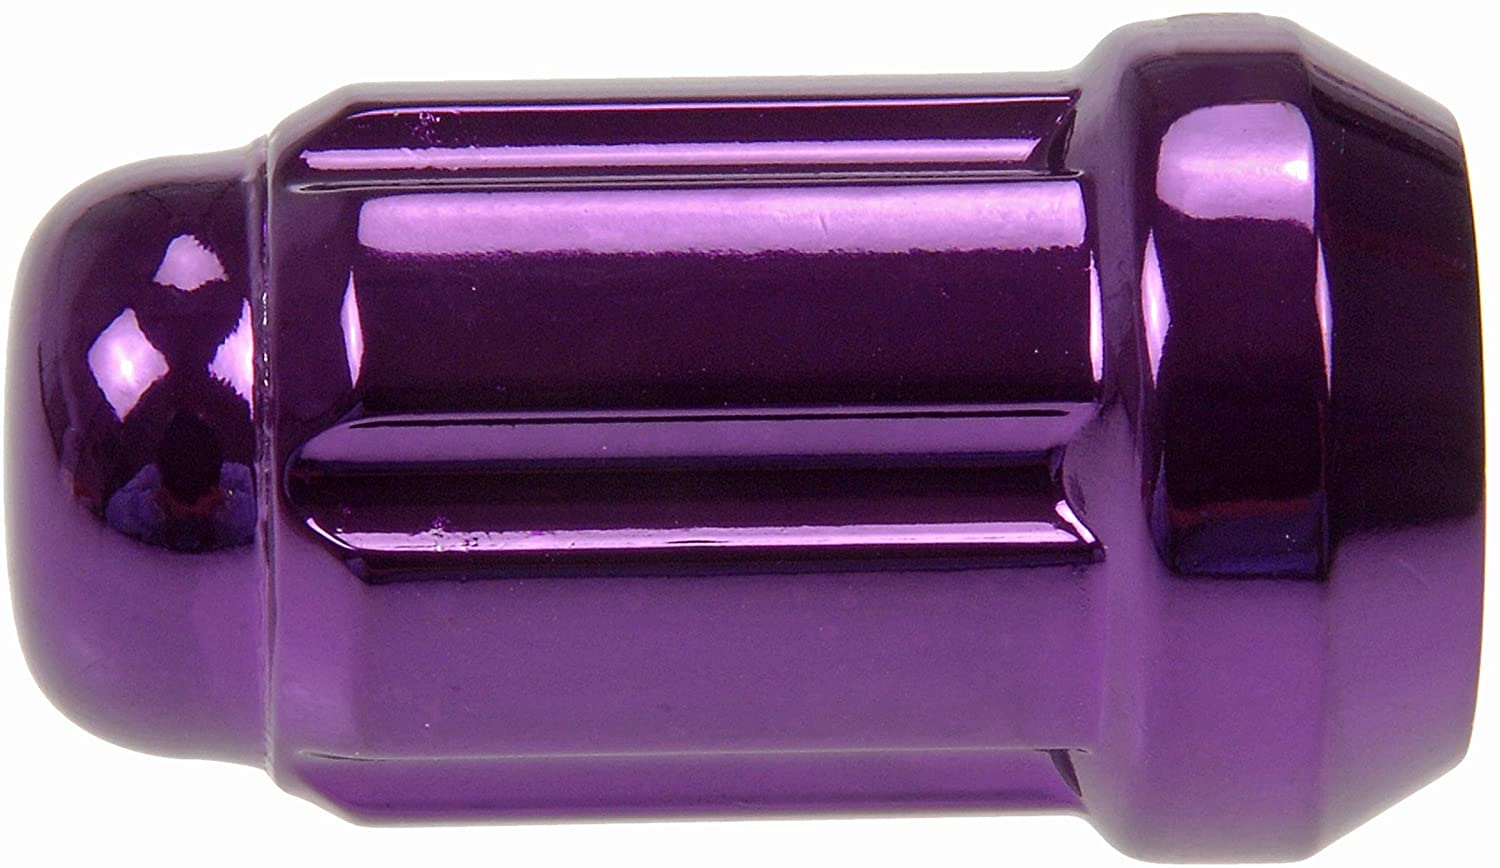 Dorman 711-255J Pack of 20 Purple Lock Nuts with Key